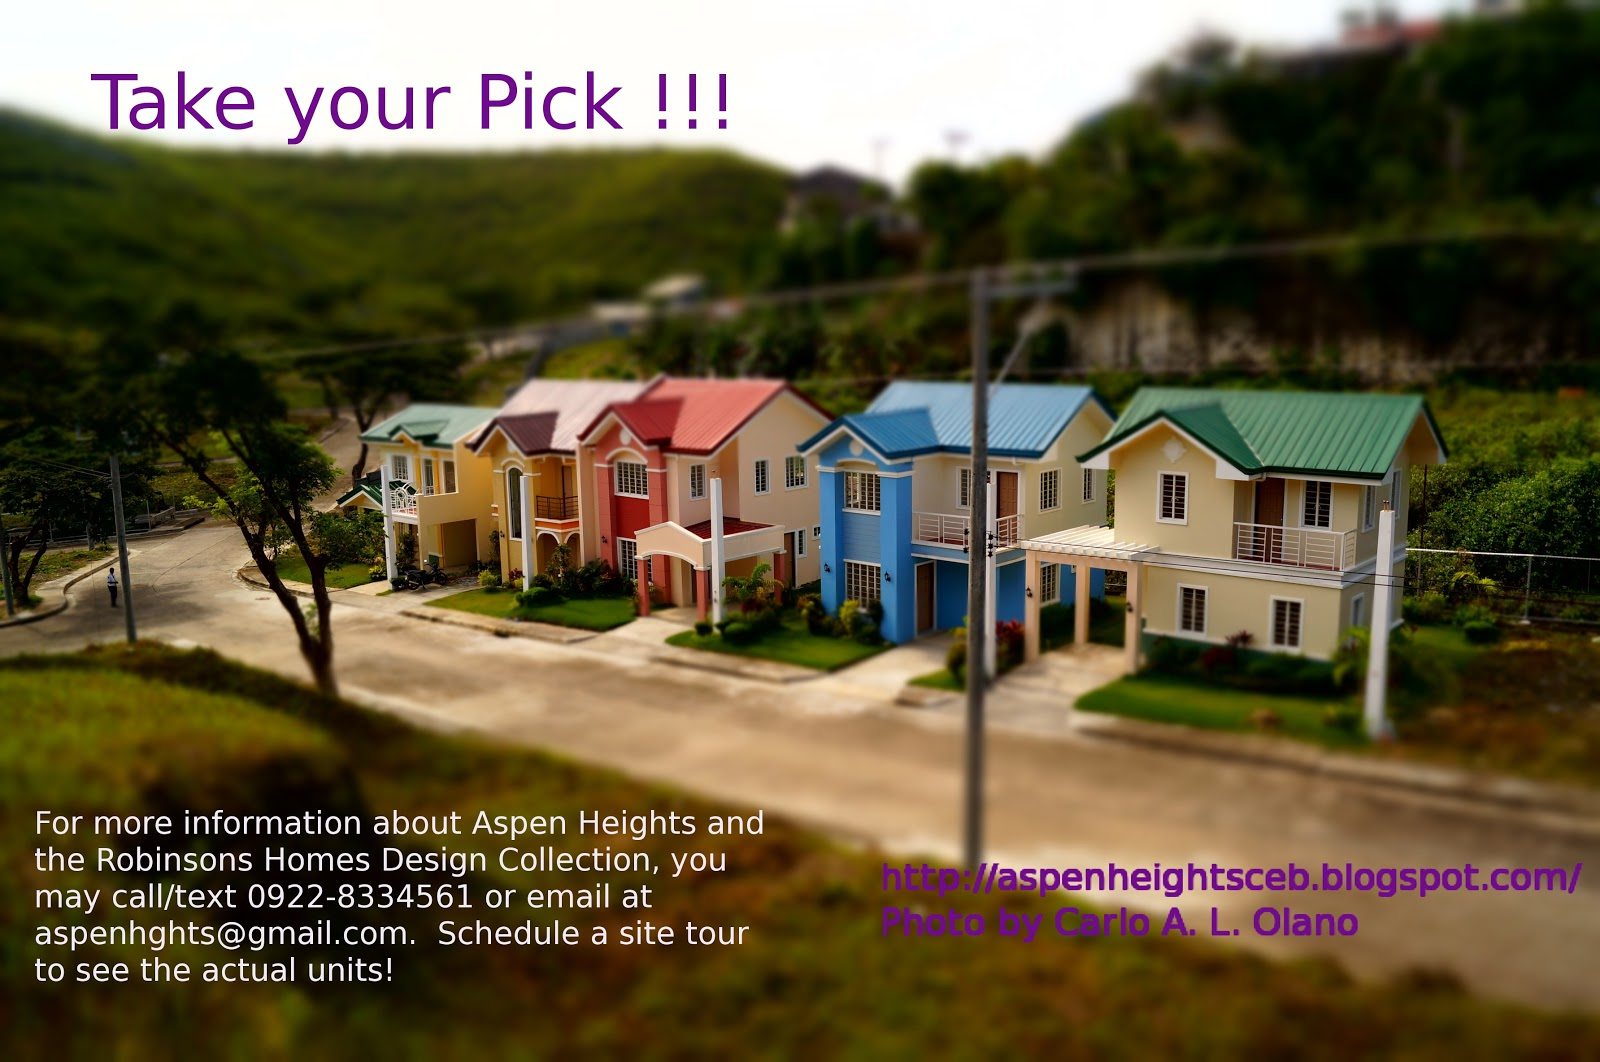 Aspen Heights Cebu: Robinsons Homes Design Collection RFO Units